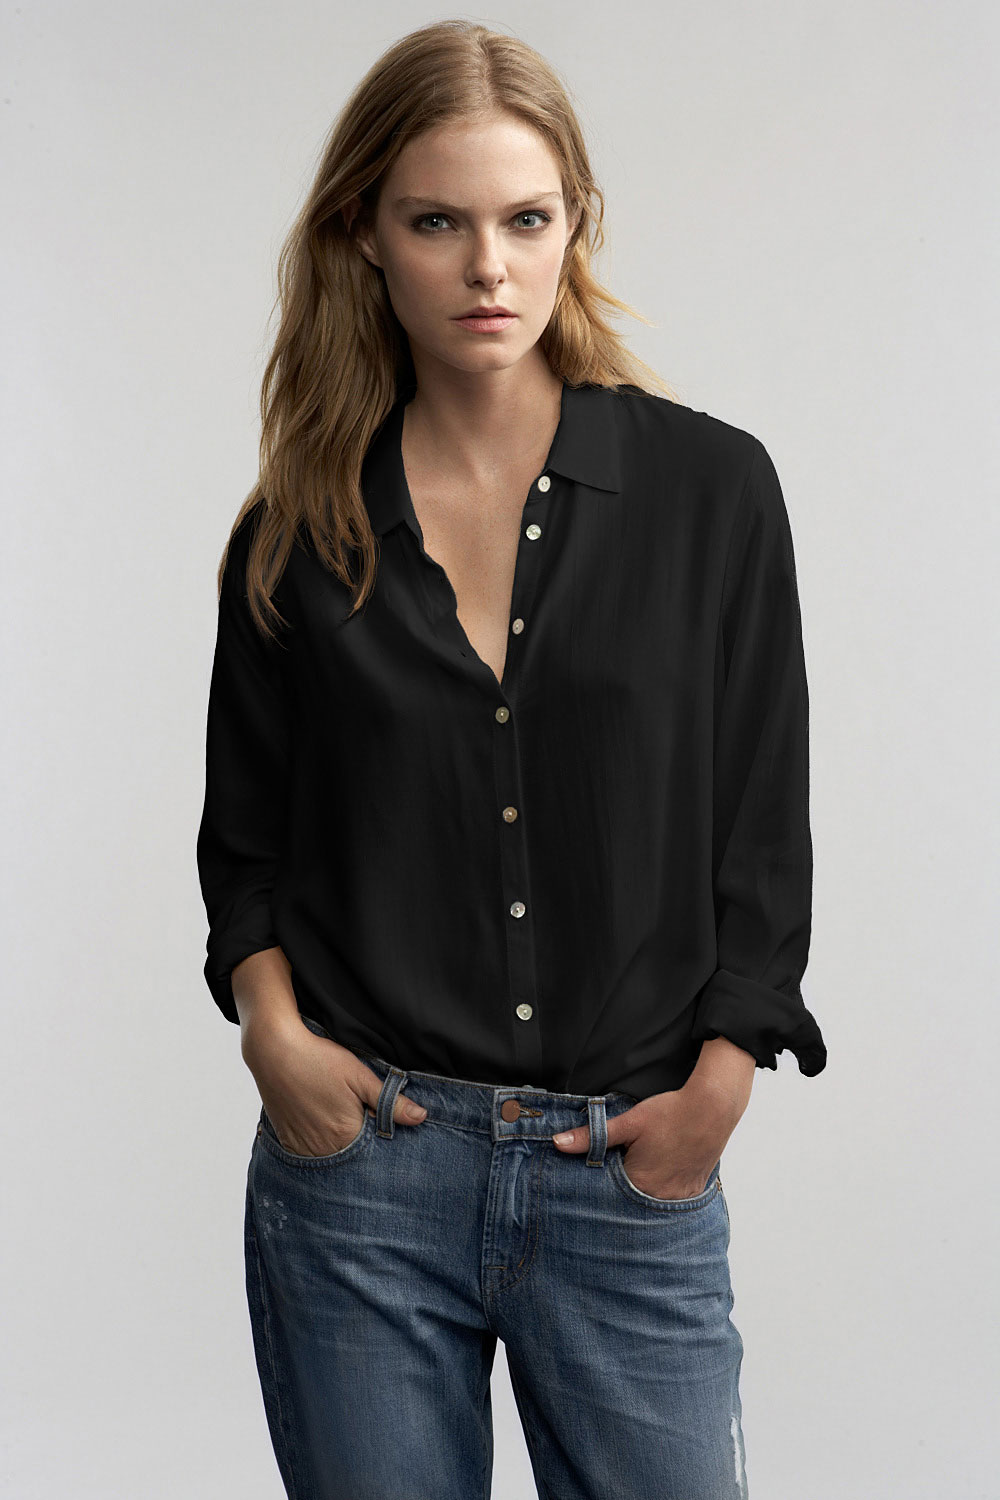 Womens See Through Shirts